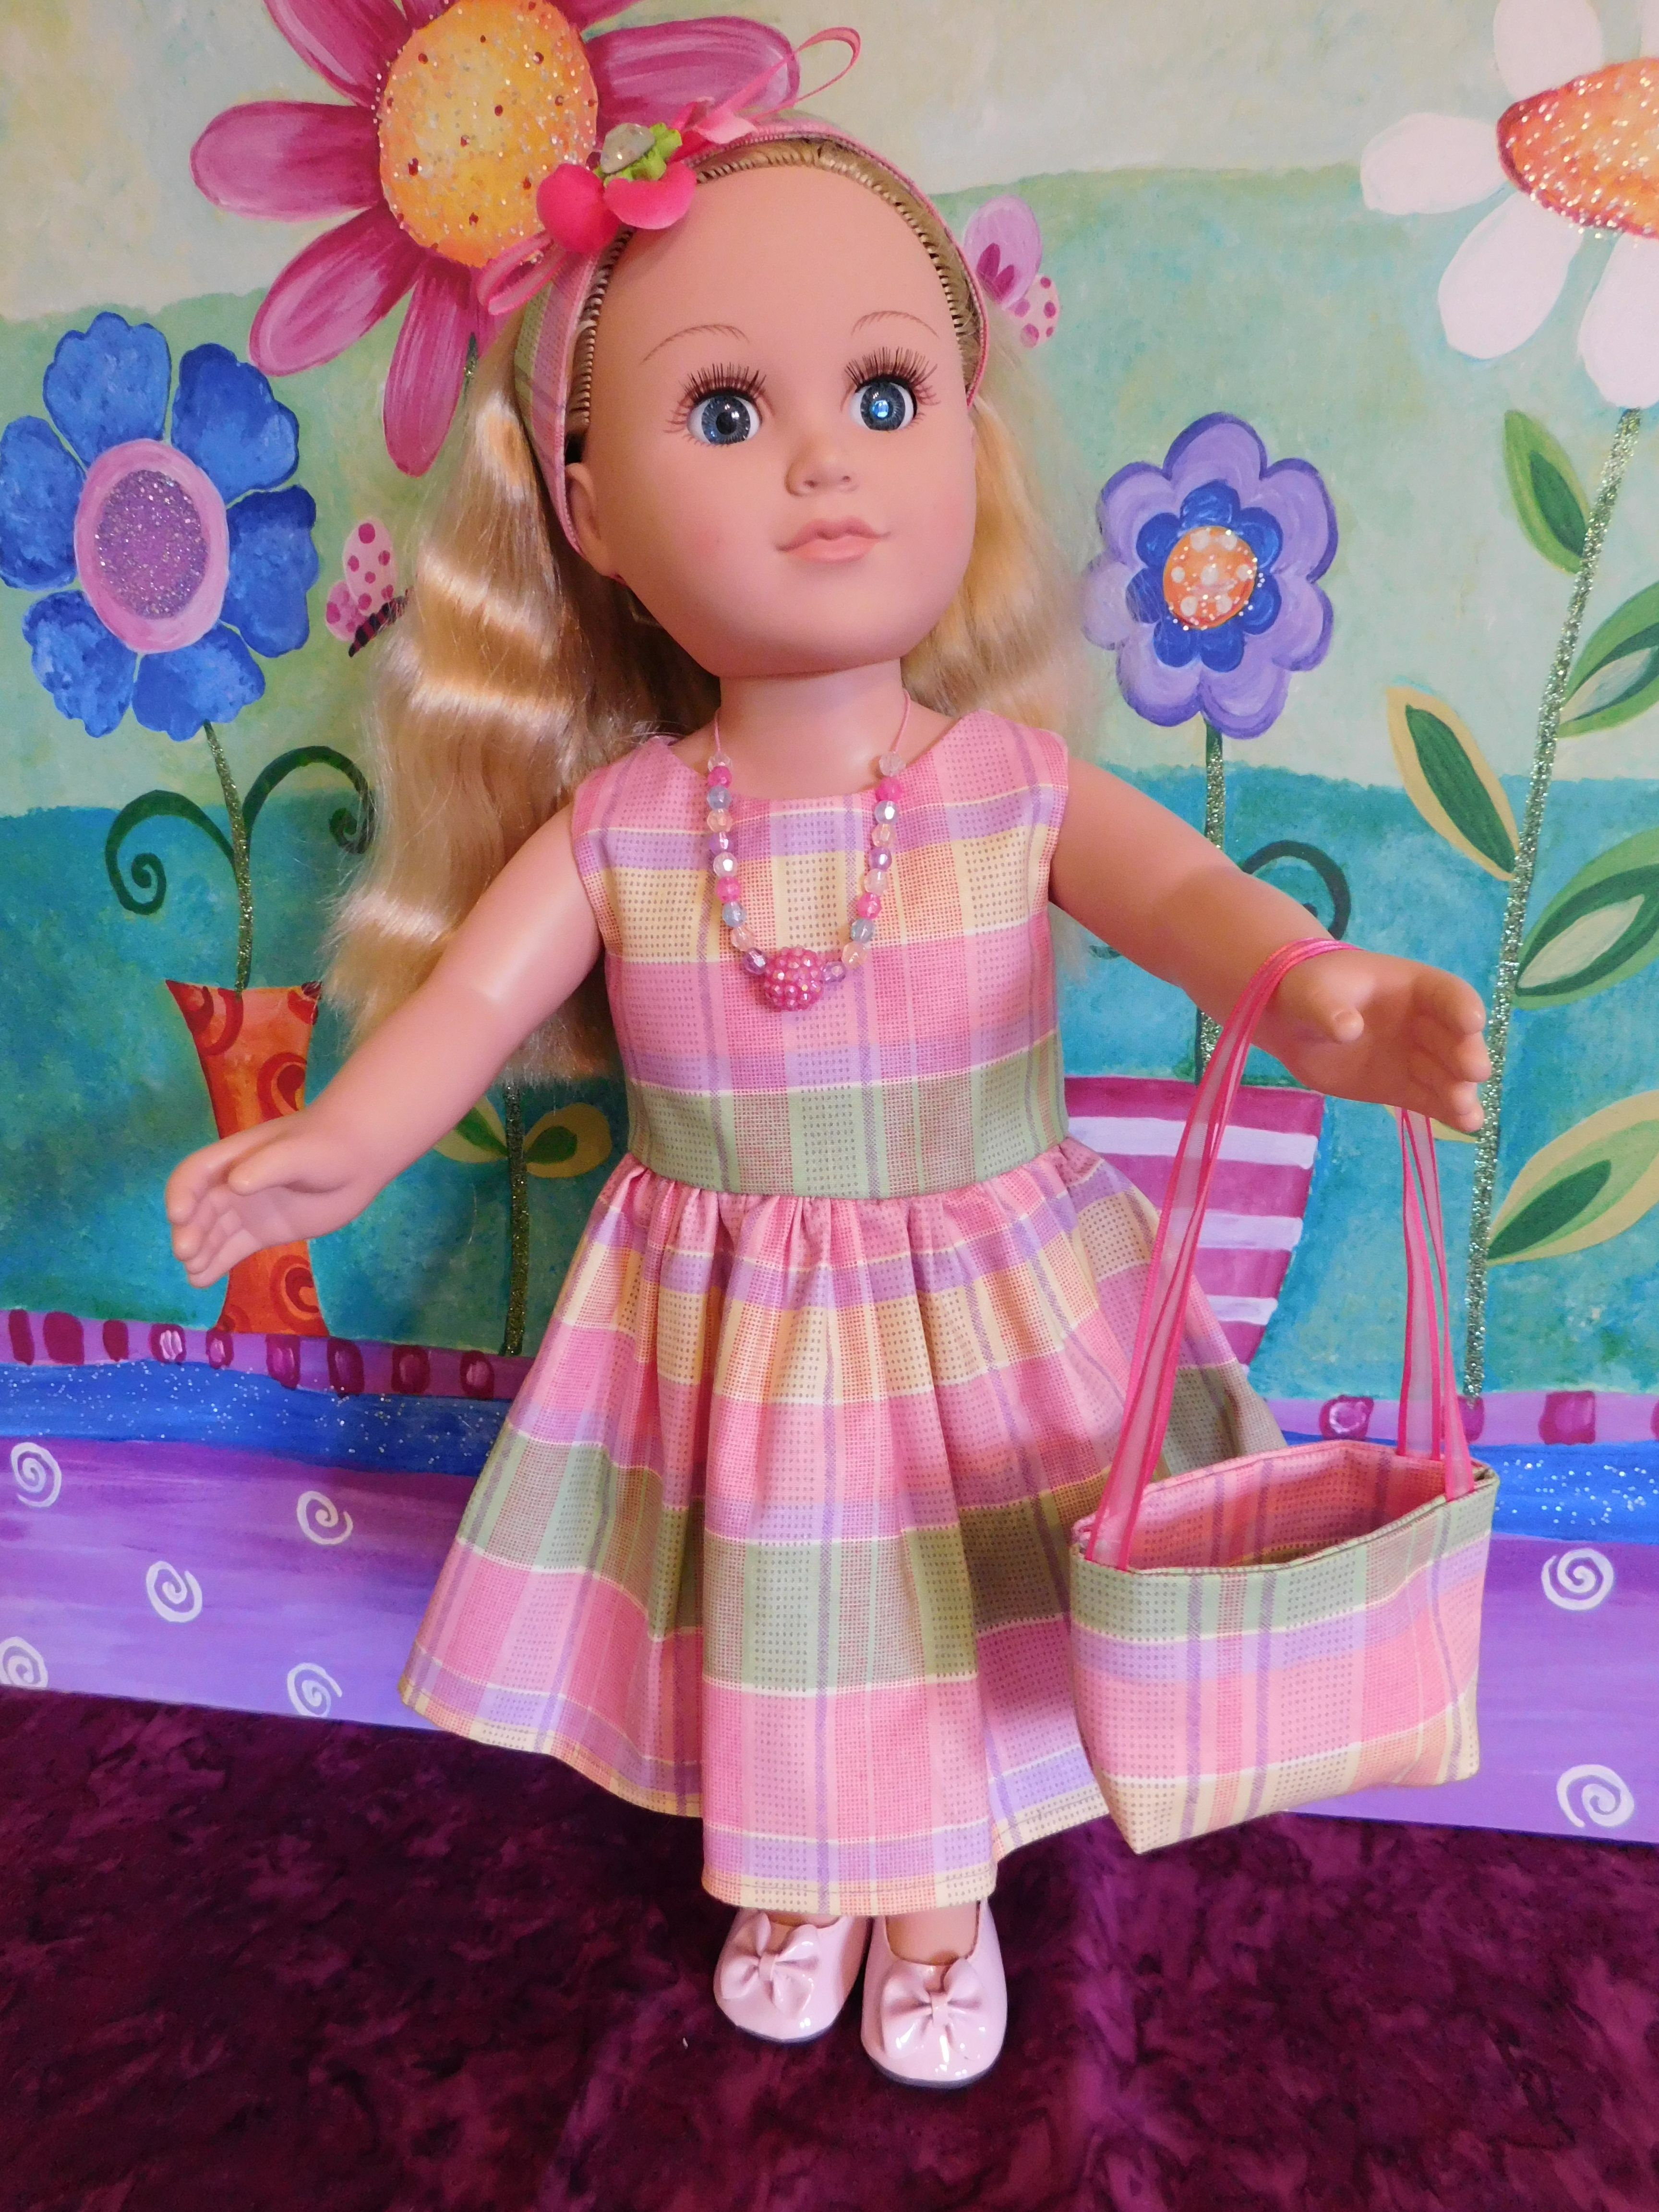 "Pretty Pink Gingham Print Dress Set.  Includes Headband, Handbag, Shoes & Necklace.  Fits 18"" Dolls."